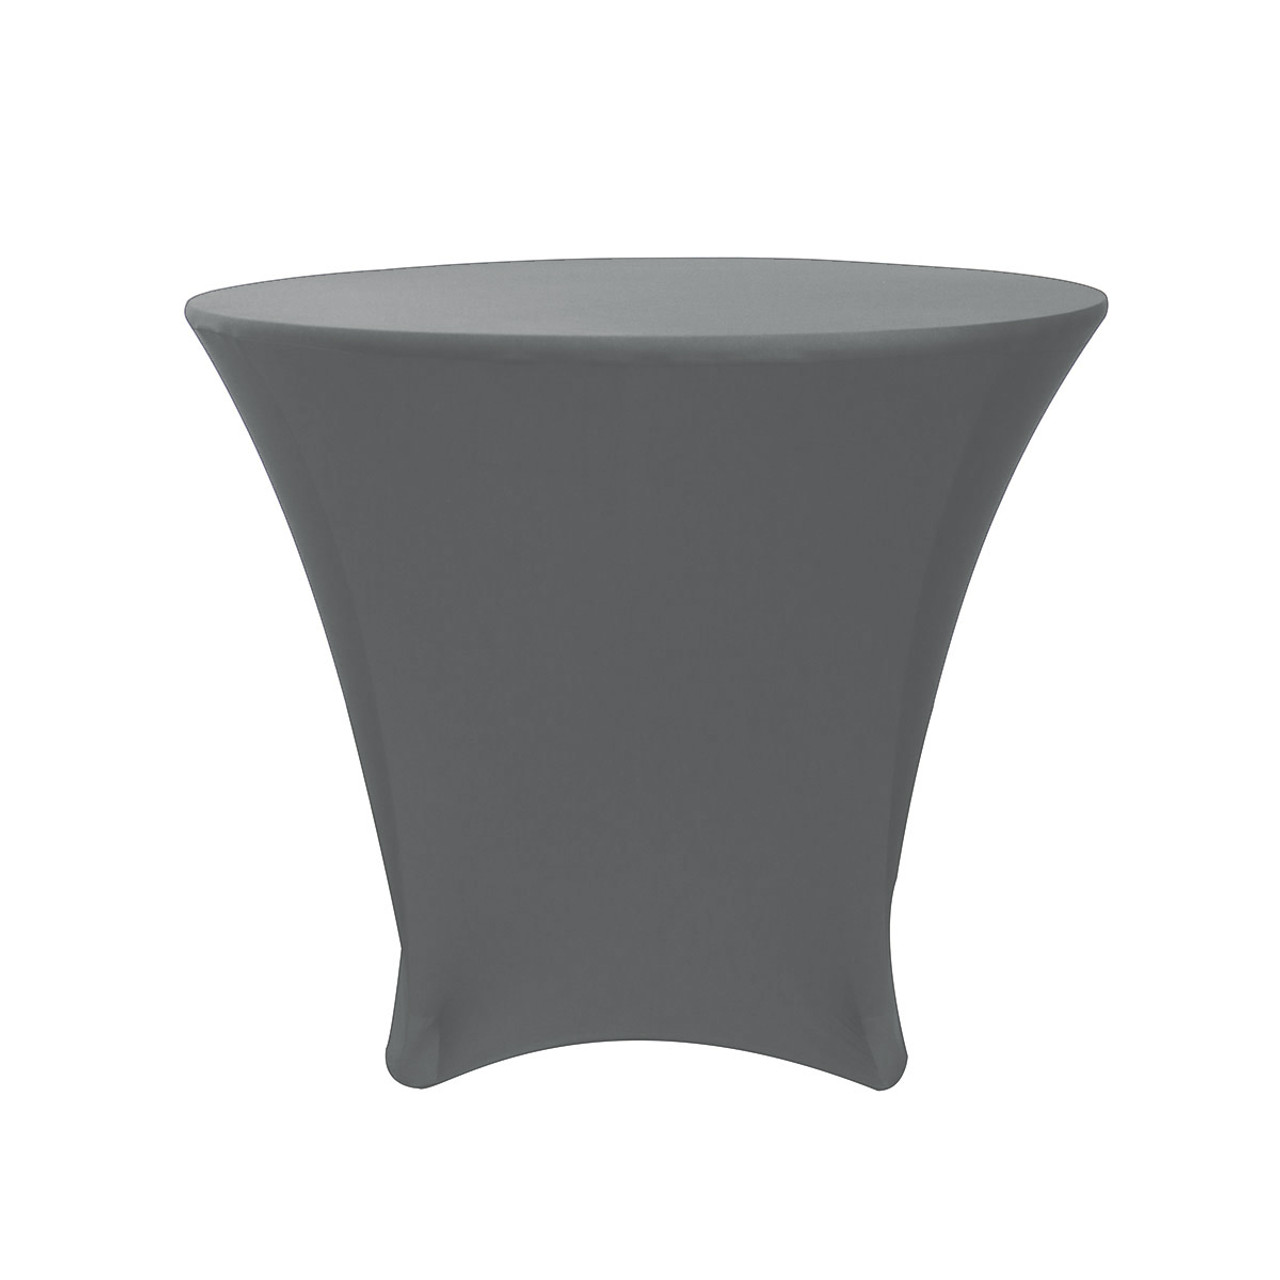 225 & 36 x 30 inch Lowboy Cocktail Spandex Table Cover Silver